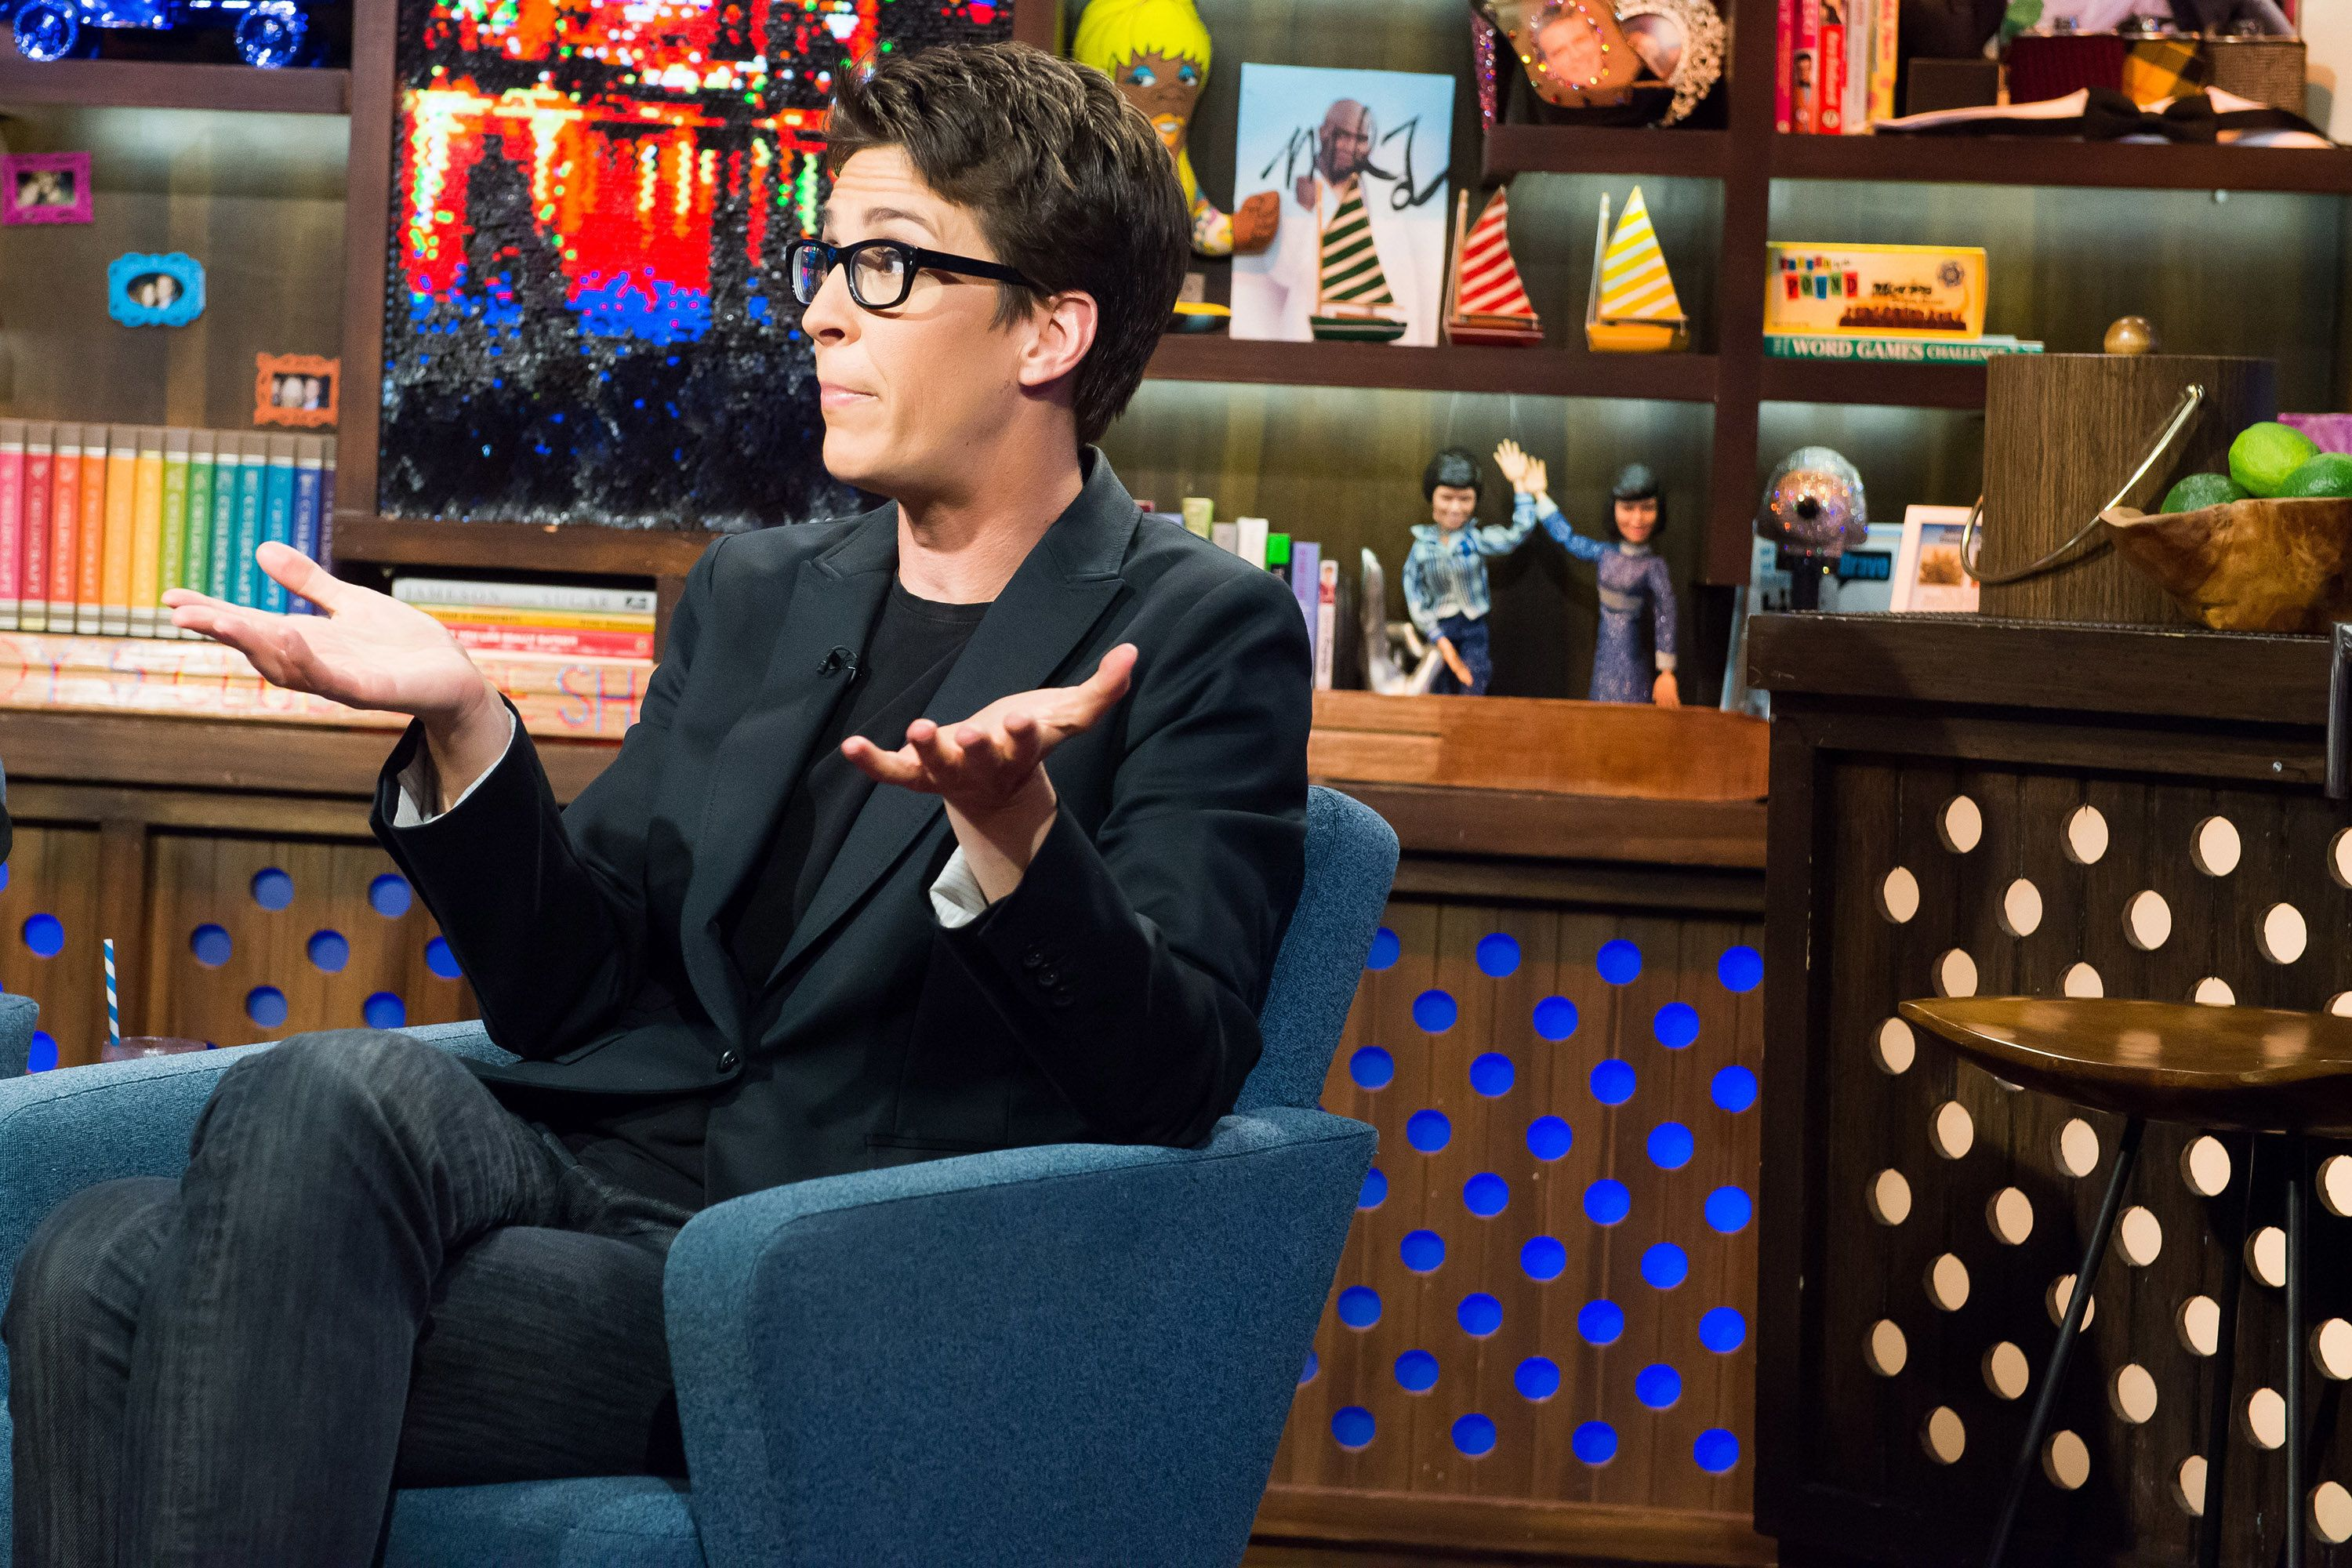 Rachel Maddow has benefitted from largely ignoring the noise sitting right in front of her on Twitter every day.